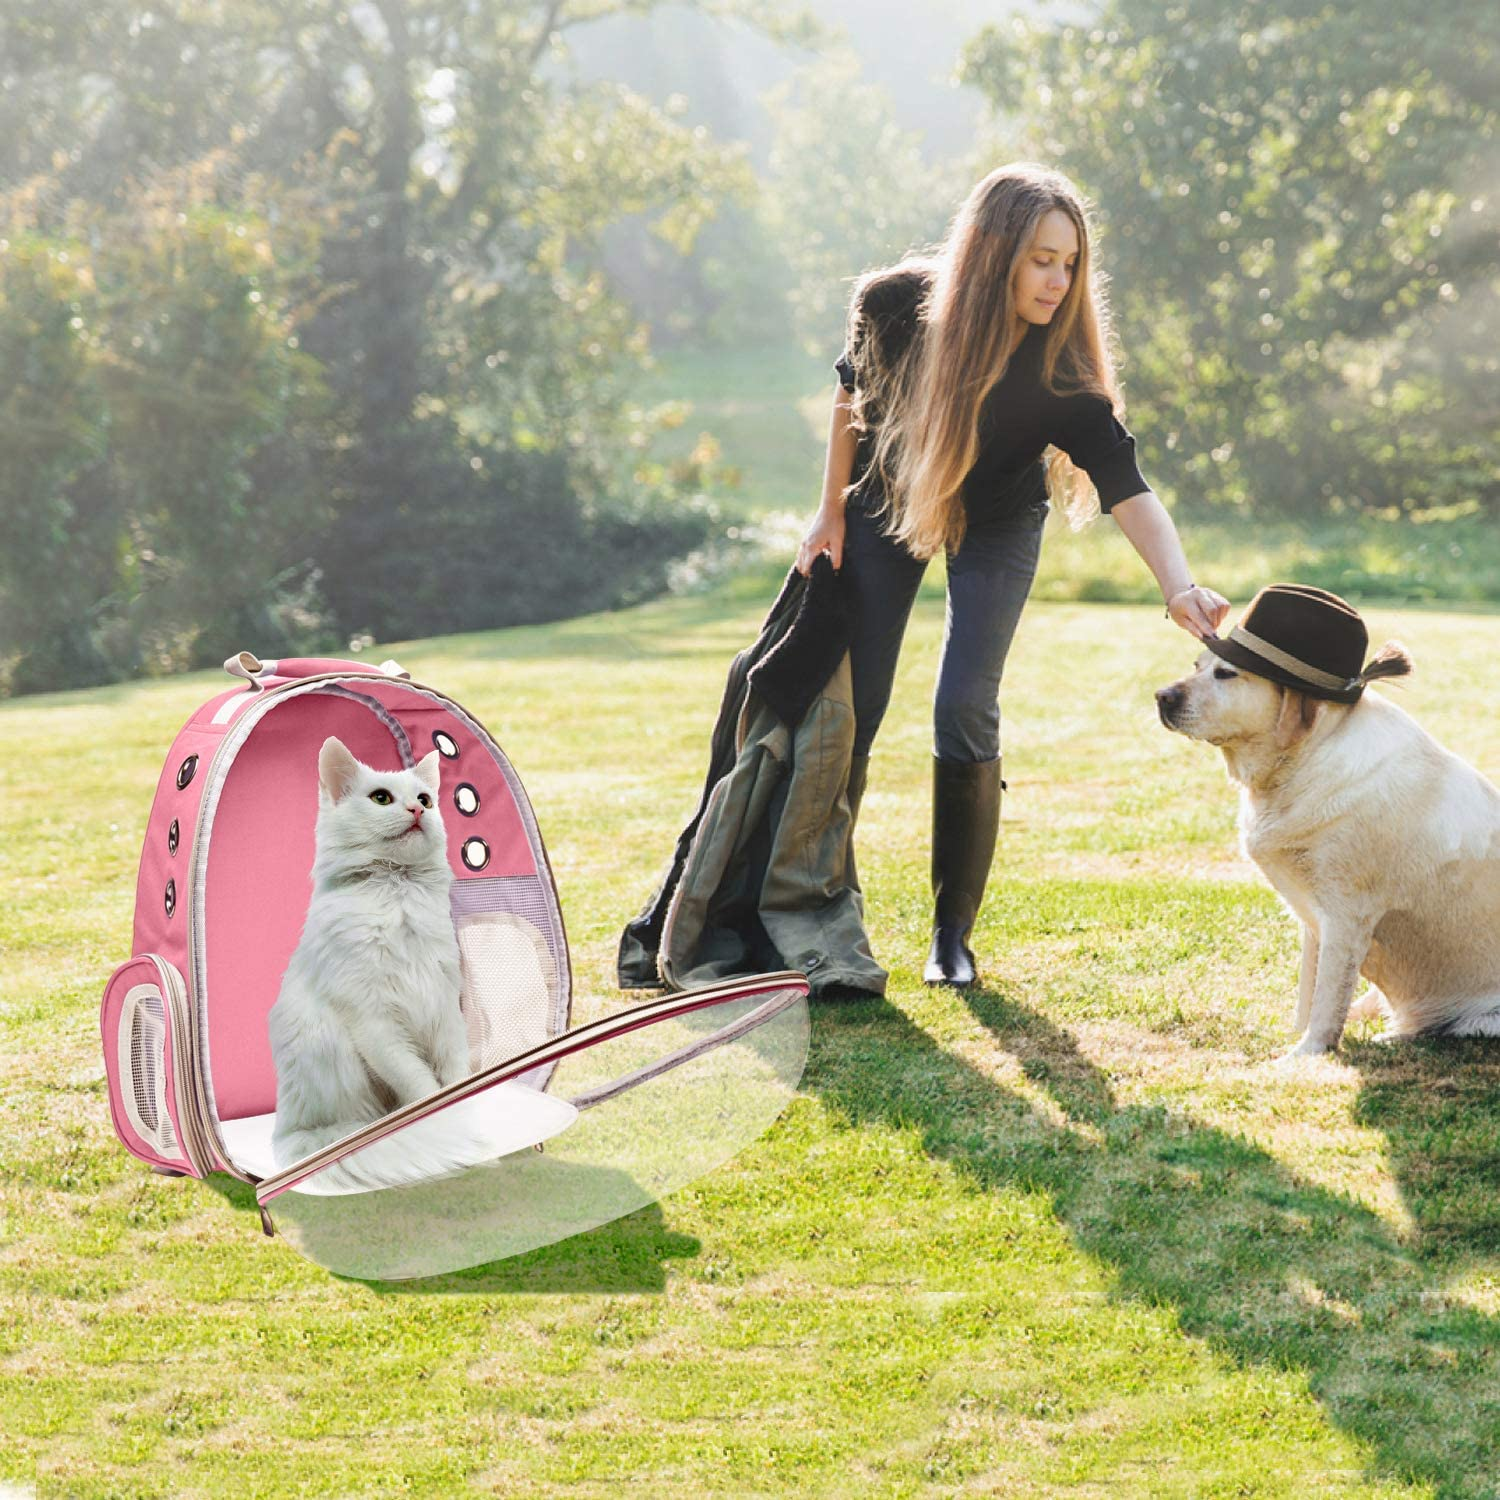 Henkelion Dog Carrier Backpack Front Pack Pet Carrier Back Pack for Small Medium Cat Puppy Doggie Dog Body Carrying Bag Travel Space Capsule Knapsack